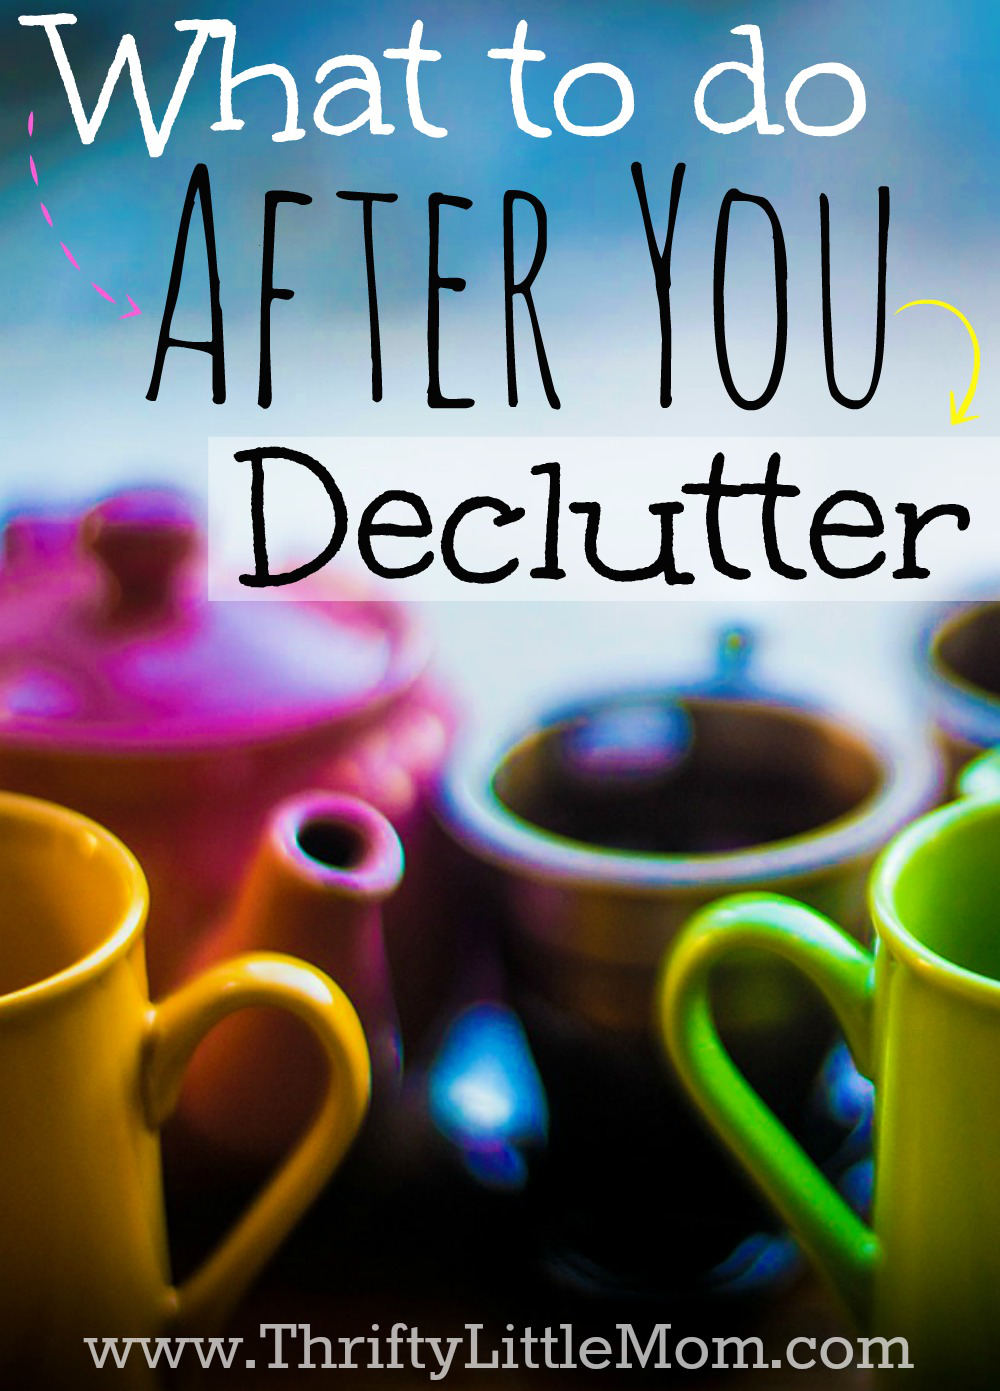 What to do after you declutter